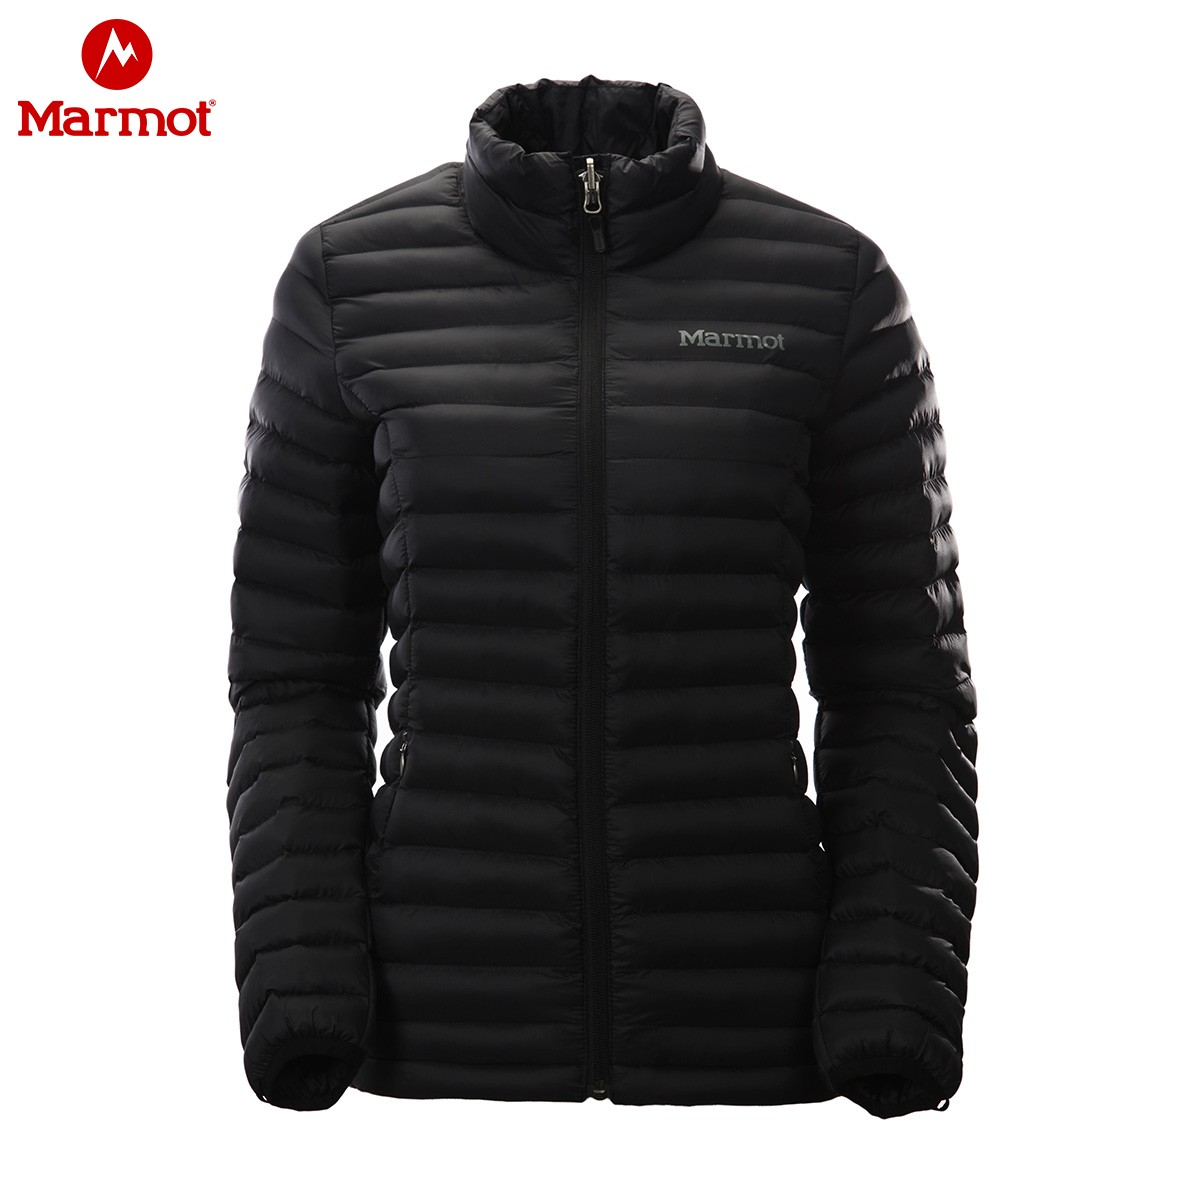 Marmot earthworm autumn winter new outdoor casual air-proof breathable lady new sherry cotton clothing warm jacket